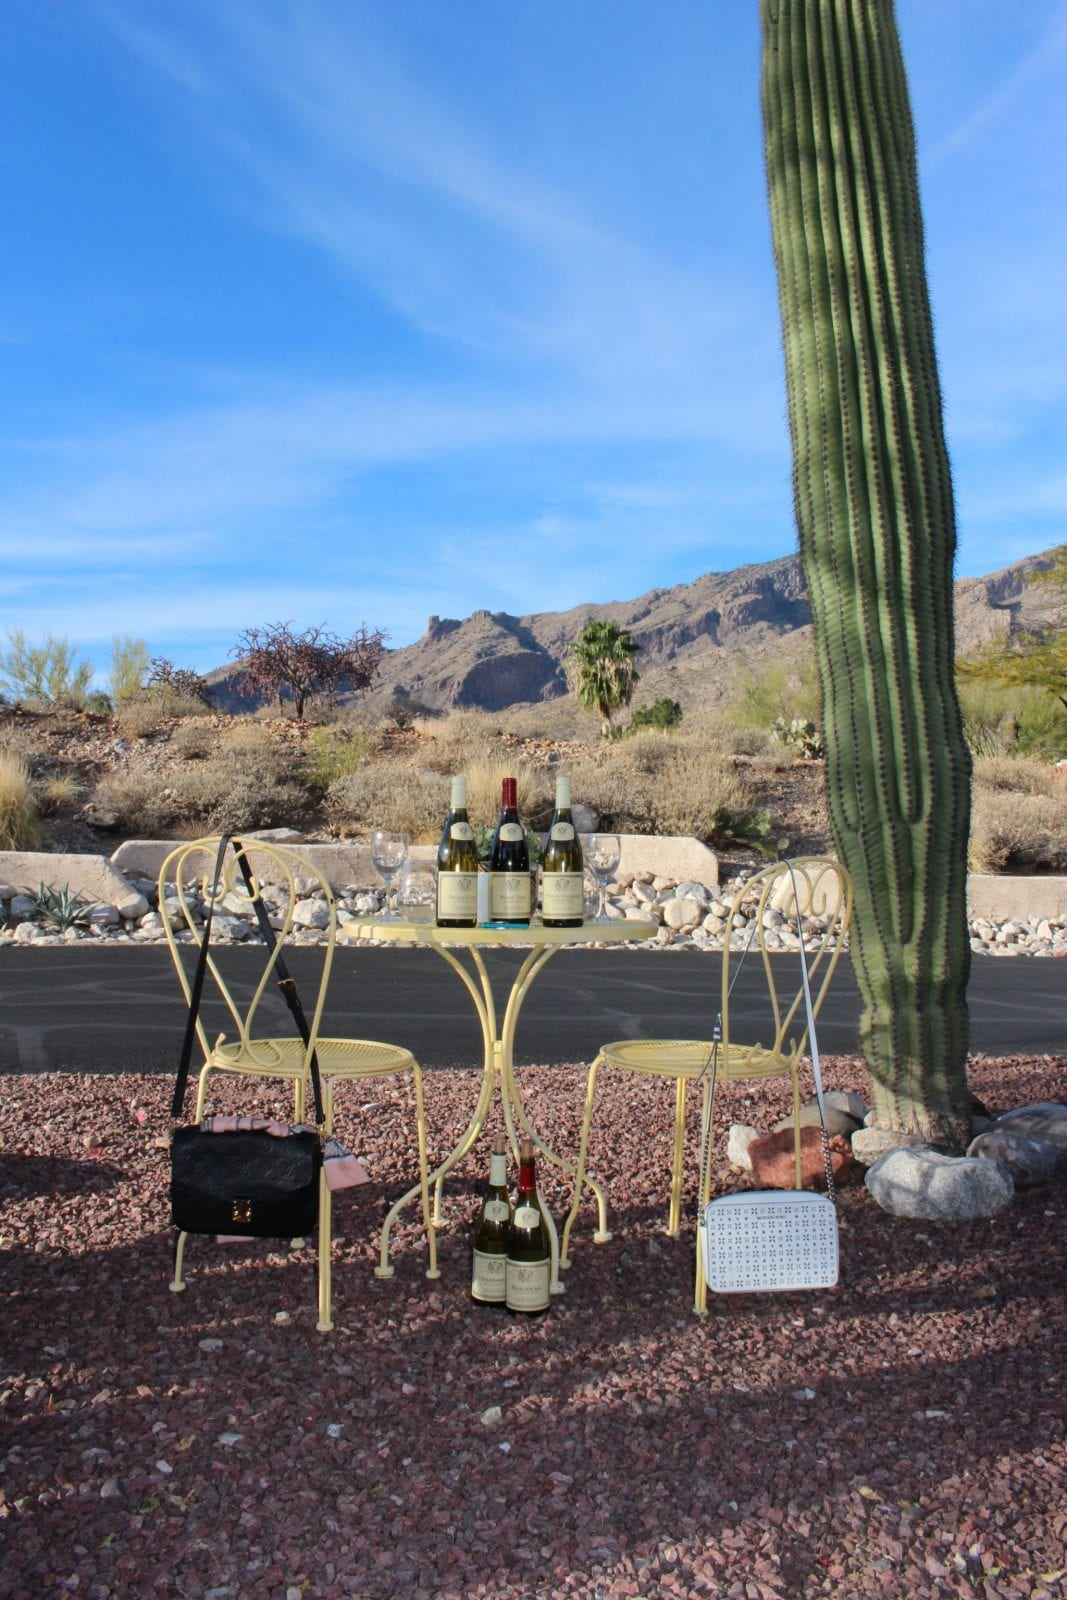 This is a shot of the picnic table, our purses hanging on the yellow picnic chairs, and the Louis Jadot wine sitting on a yellow French table with the Sonoran desert in the background.